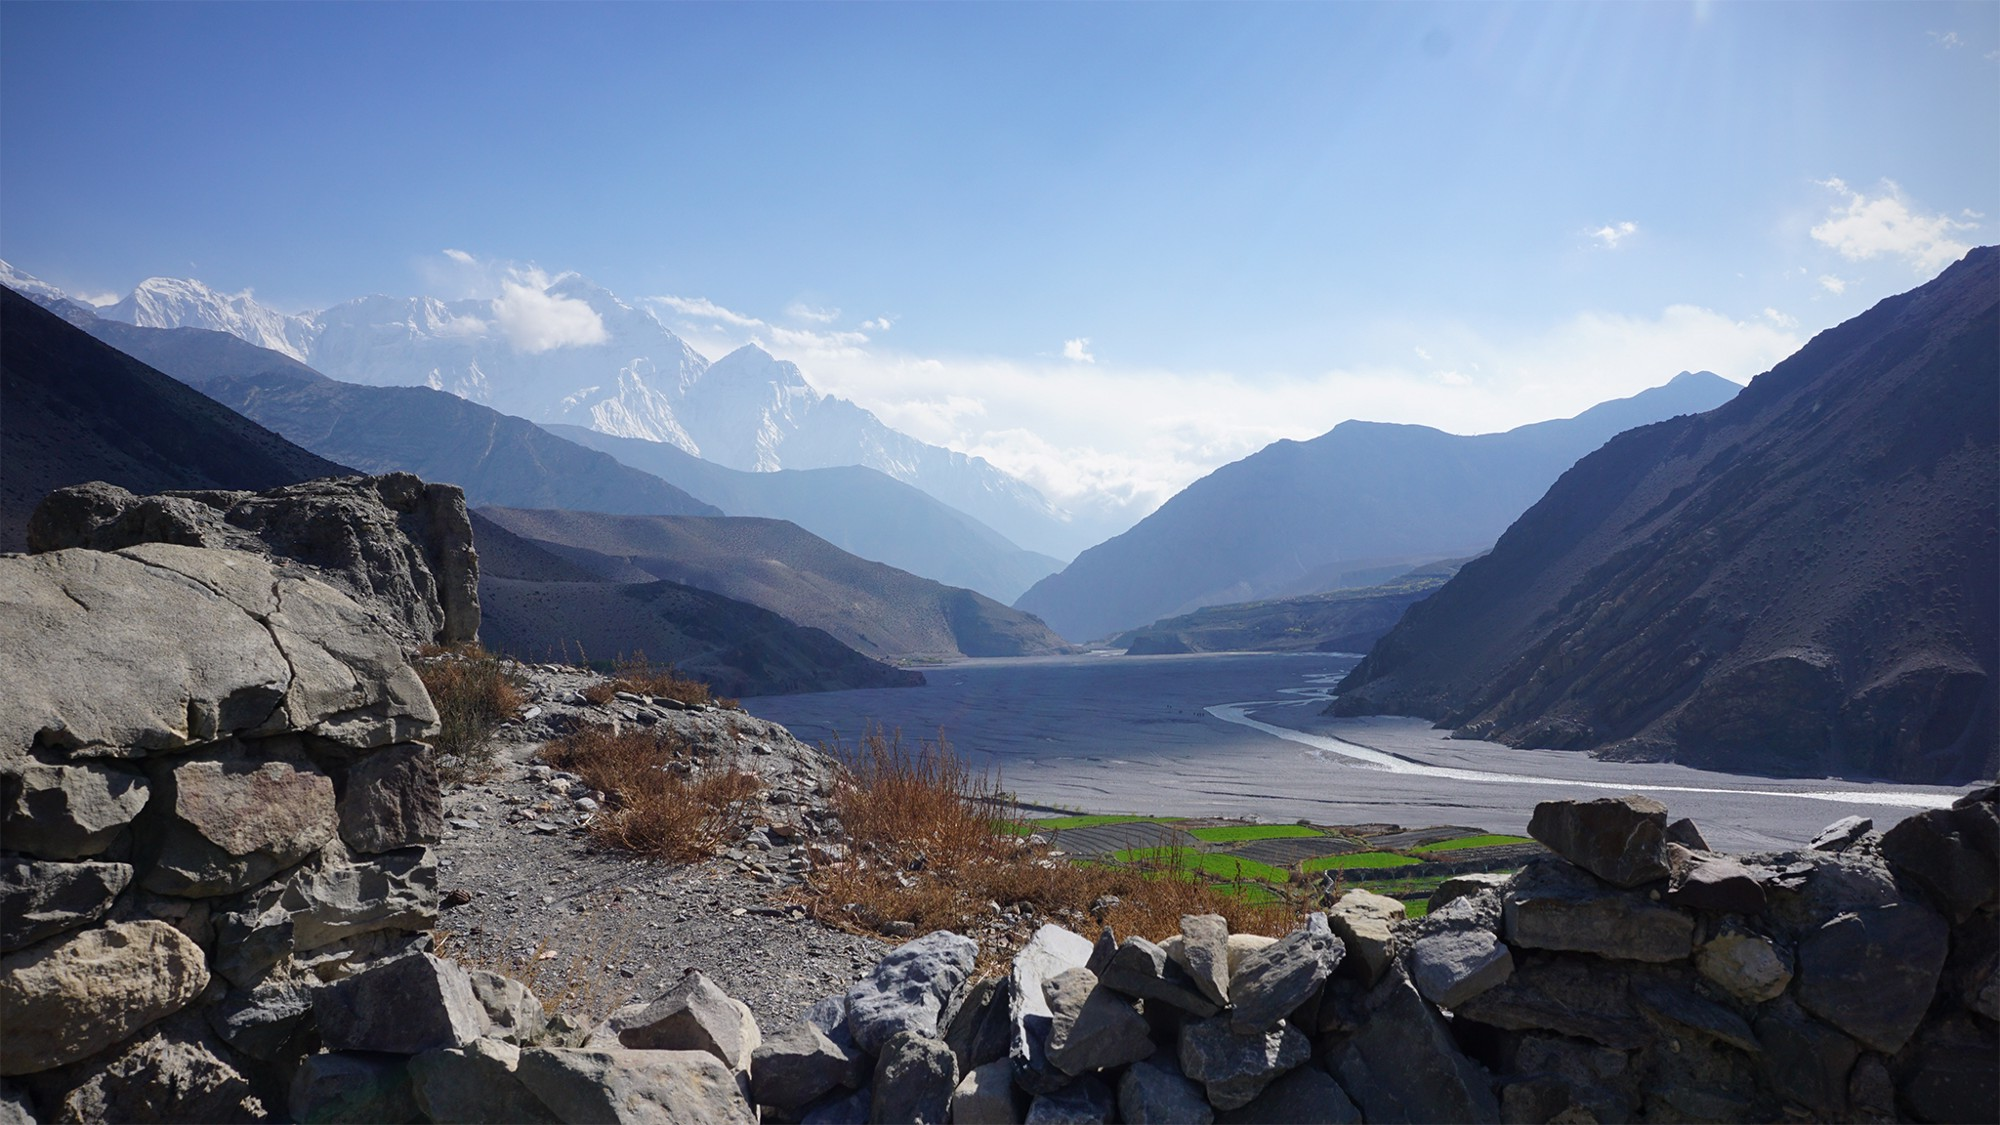 The view from Kagbeni, looking back towards Jomsom.